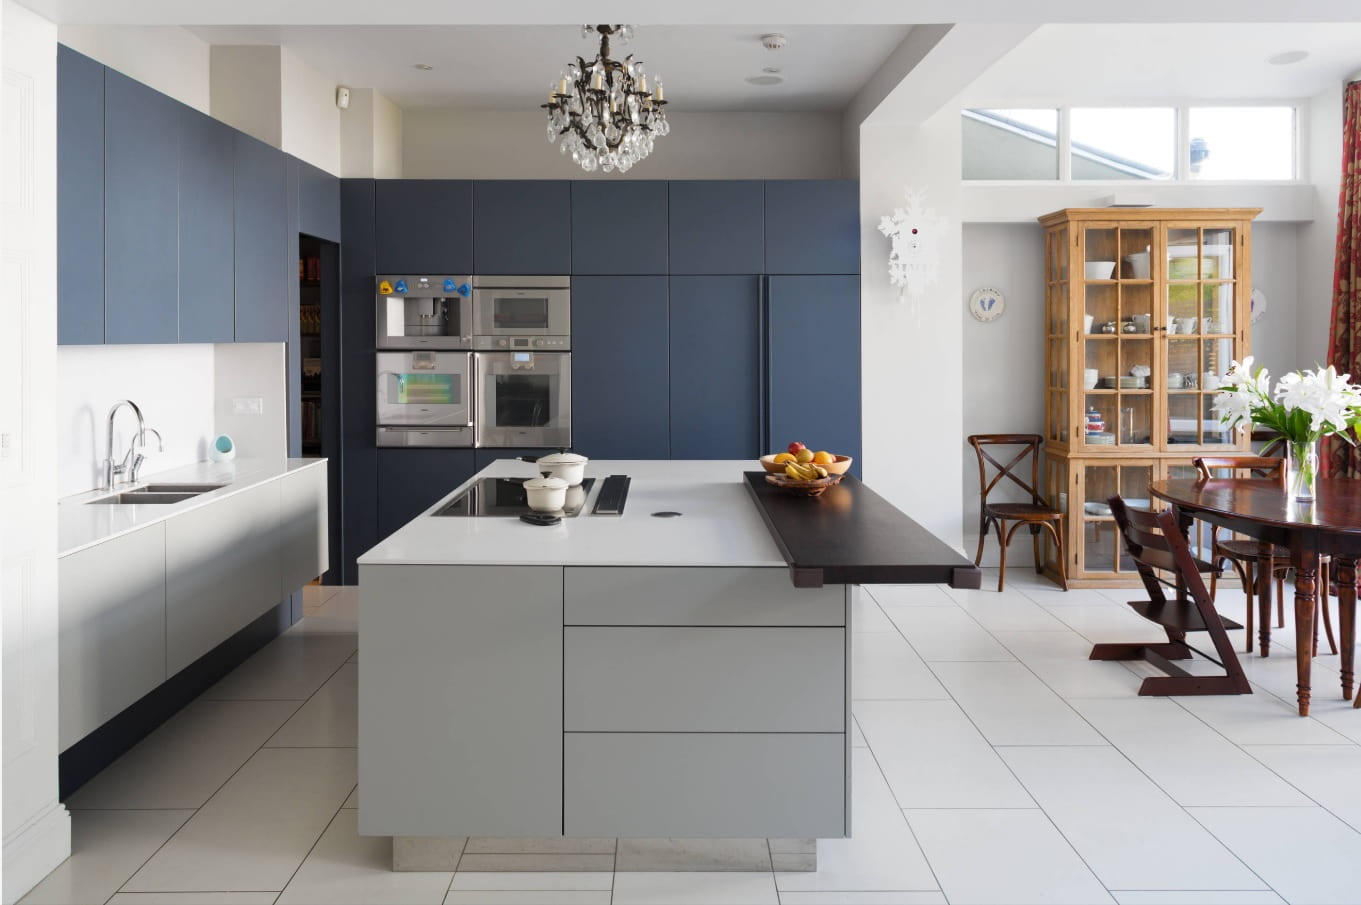 Overview of 10+ Biggest Home Design Trends in 2019 so Far. Matte kitchen finish and white tiled floor